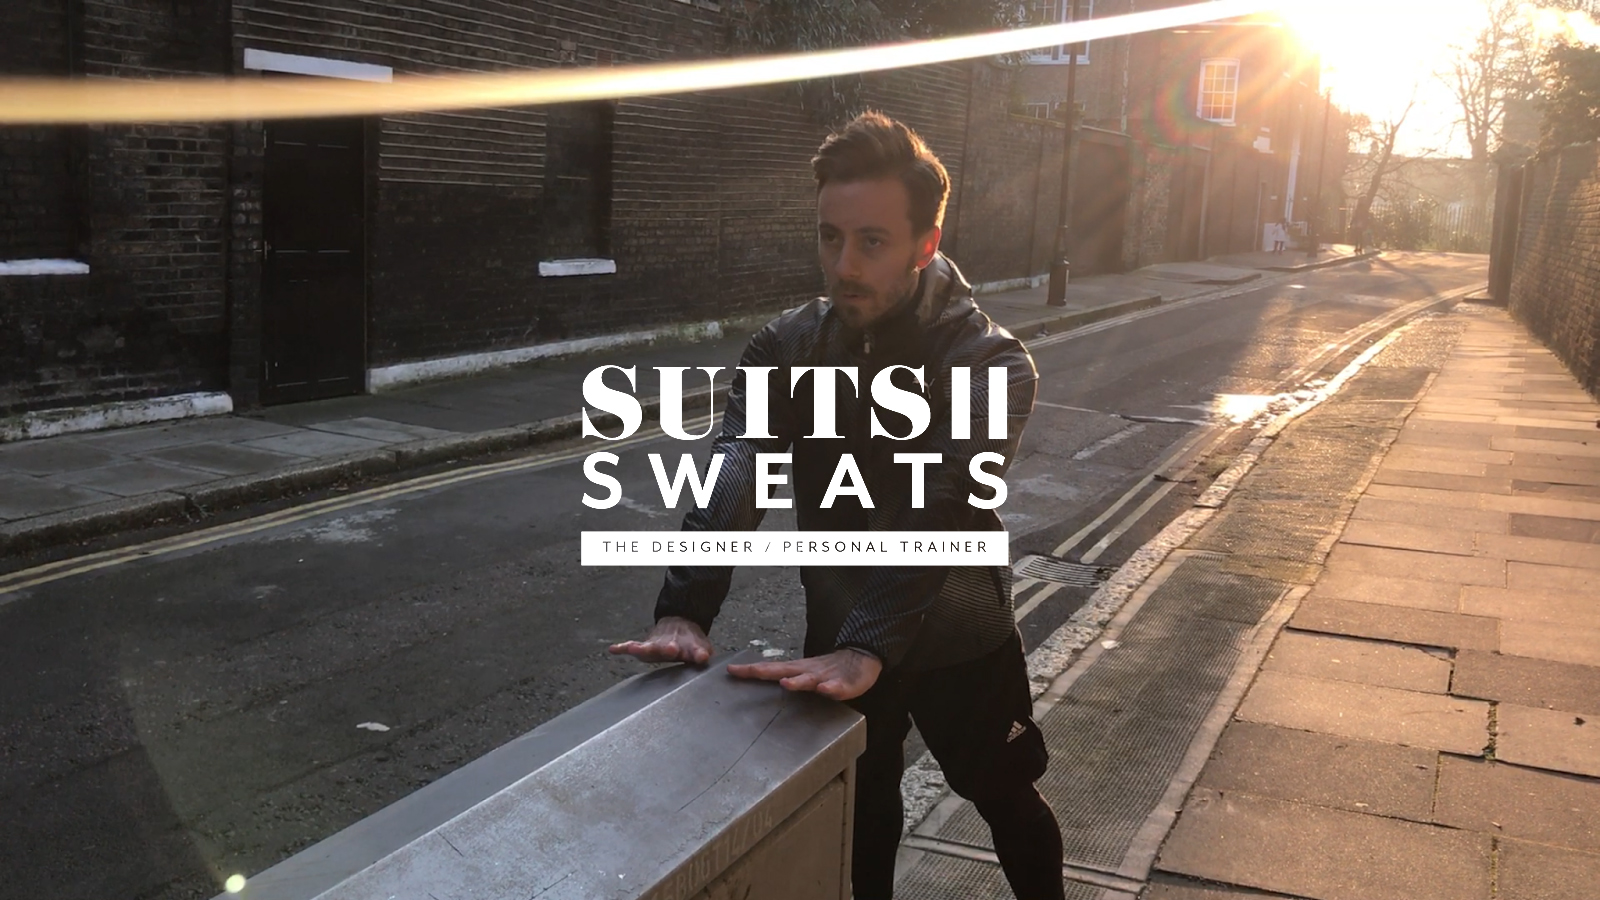 Suits To Sweats